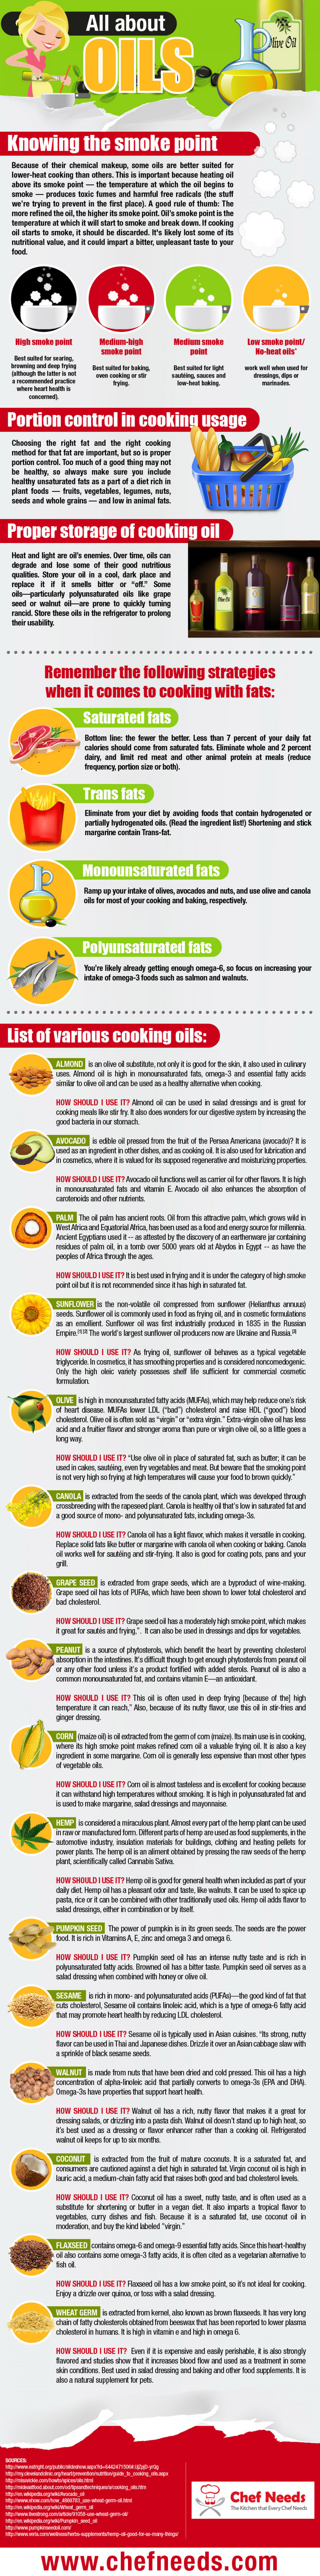 All about oils Infographic